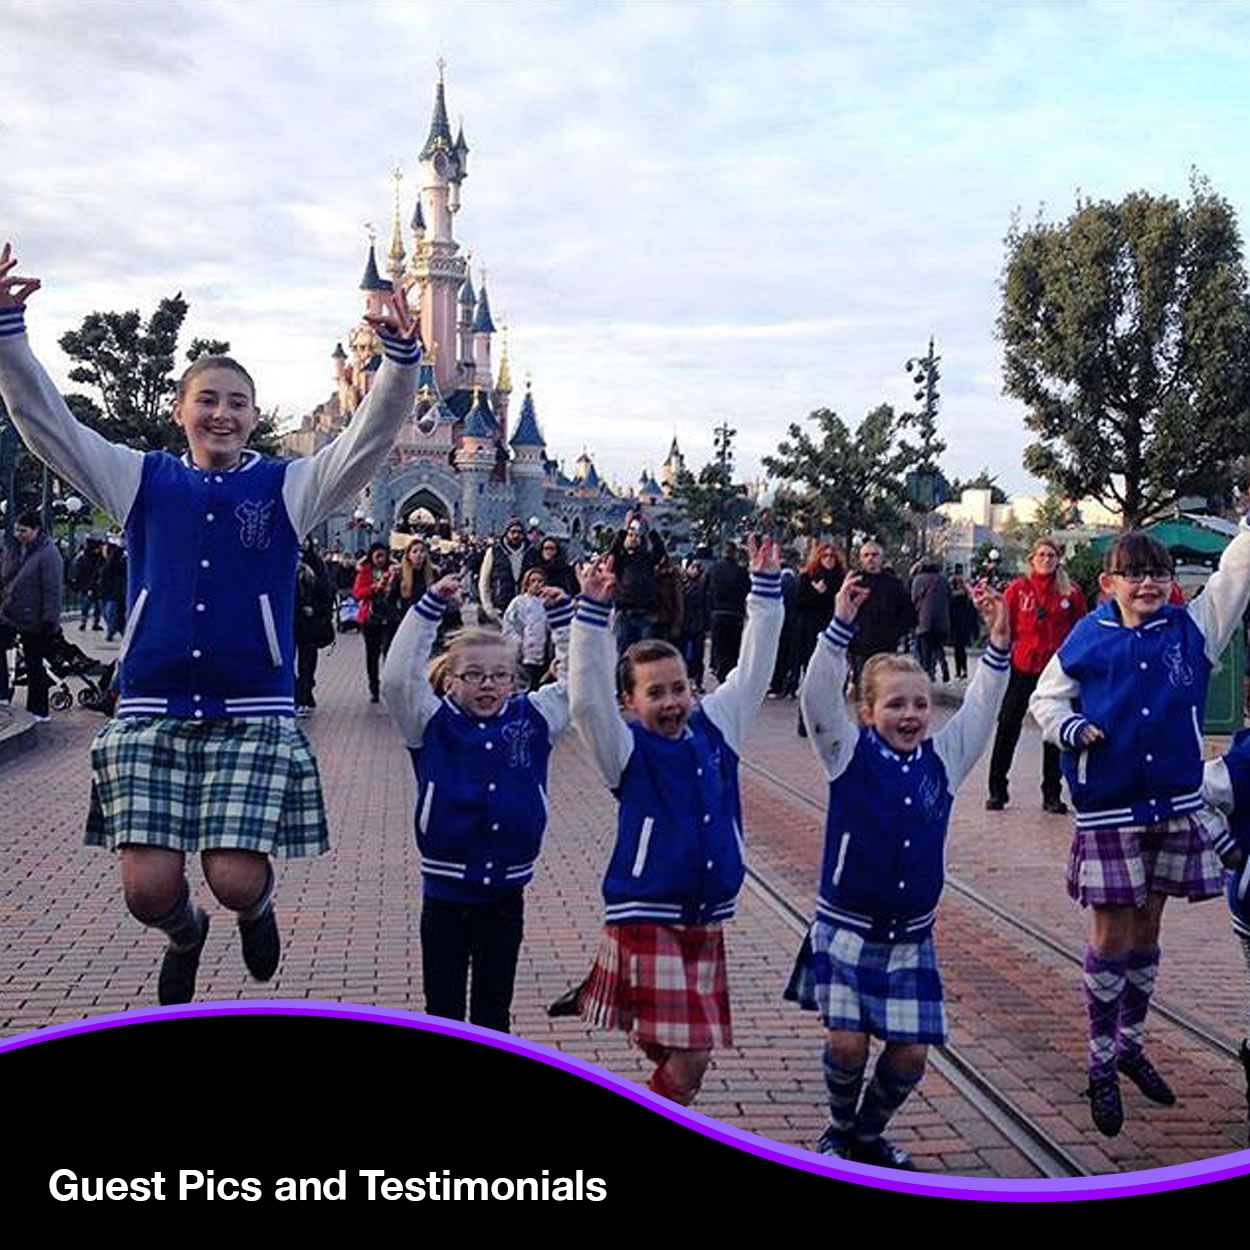 Guest Pics and Testimonials